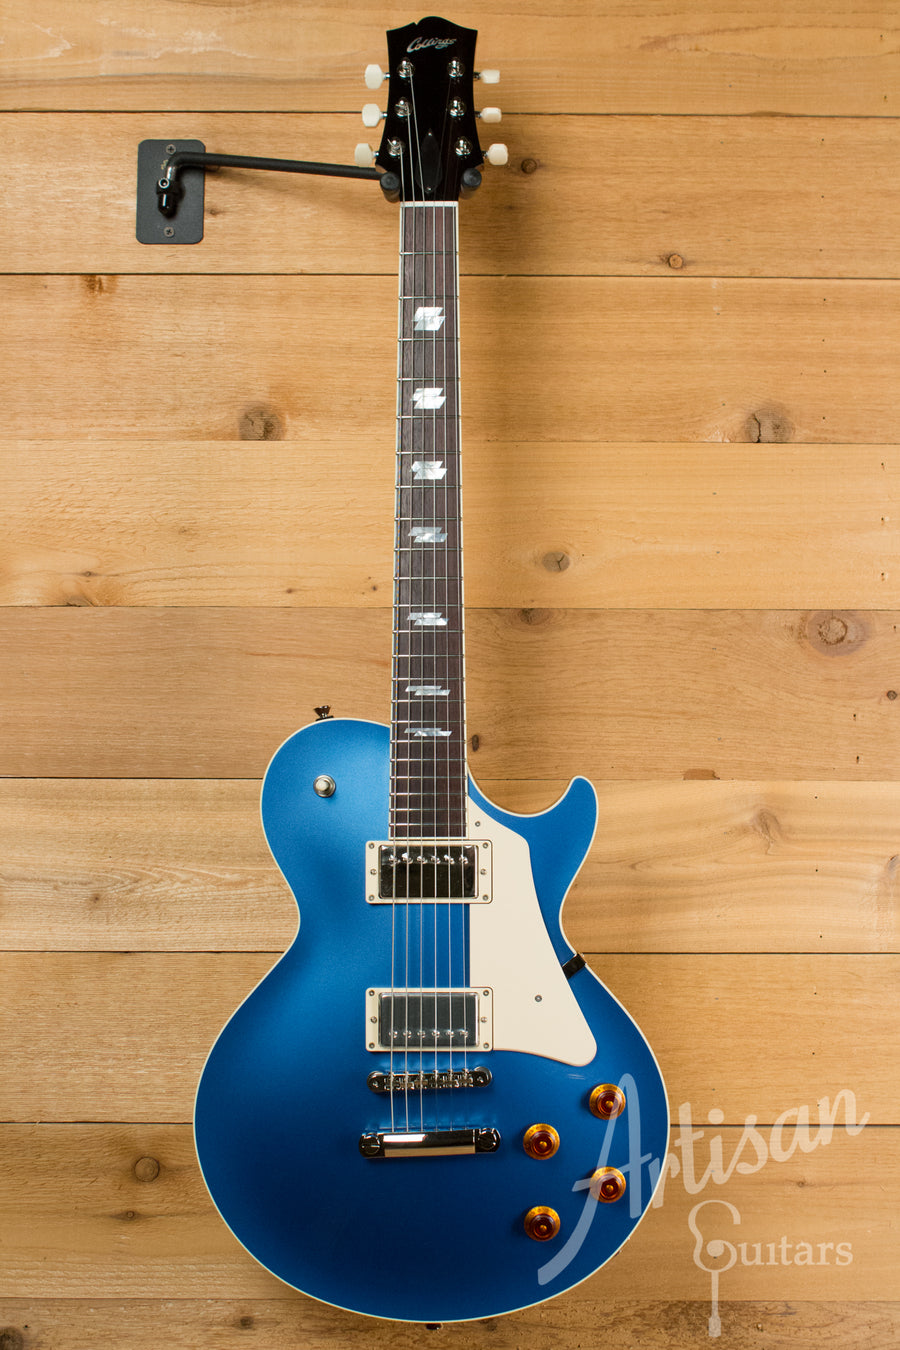 Collings City Limits Guitar with Pelham Blue finish ID-10953